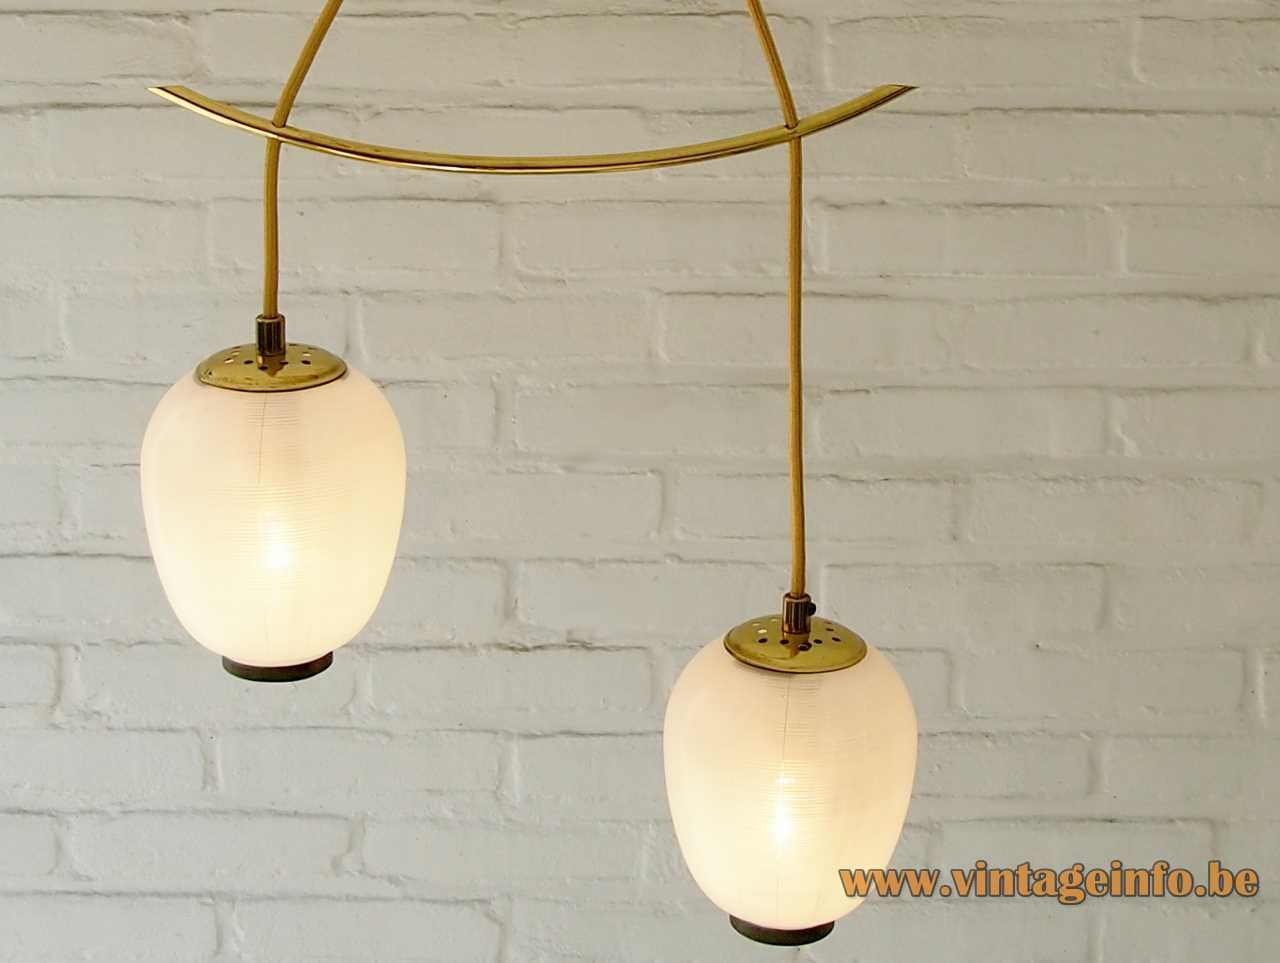 DORIA Mikado pendant chandelier 2 striped glass lampion lampshades curved brass rod 1950s 1960s Germany